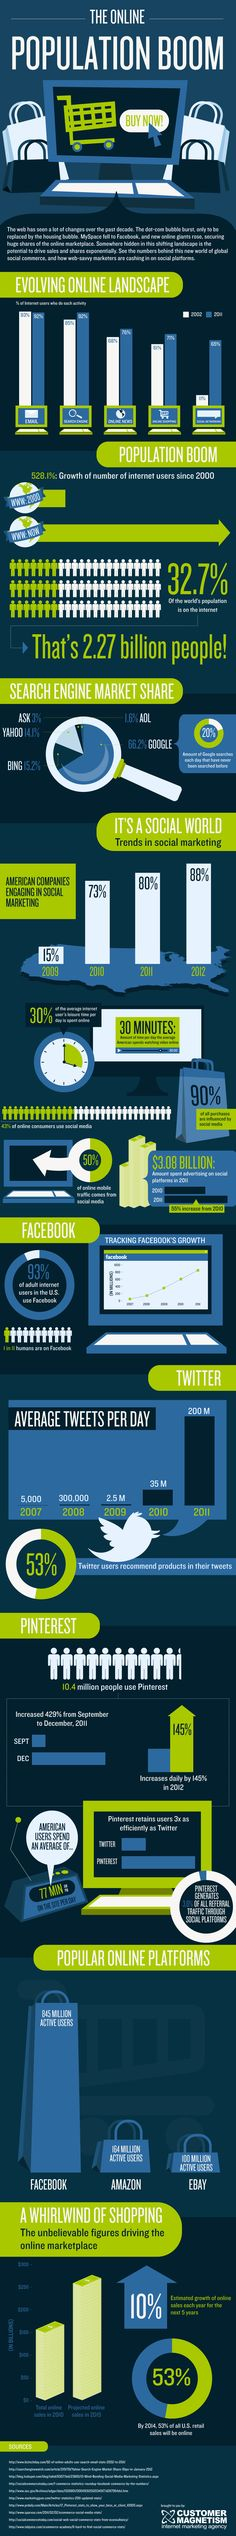 Infographic: The Online Population Boom